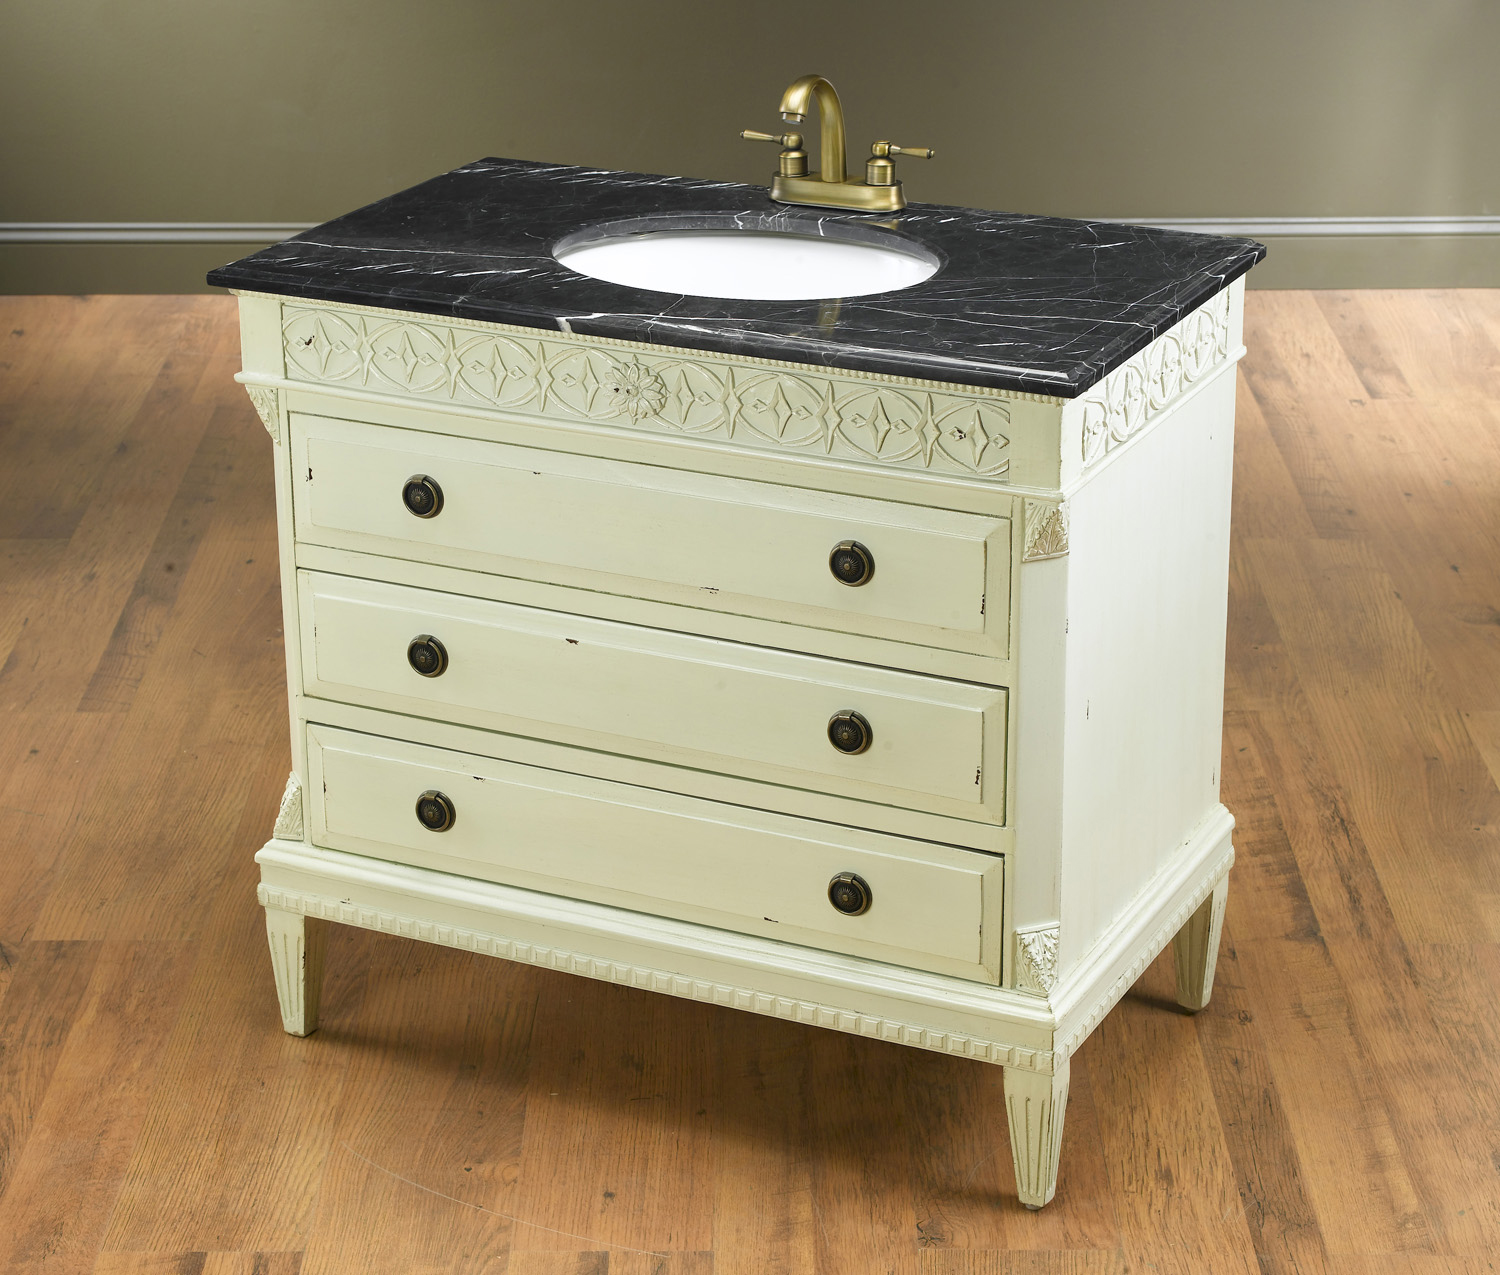 Antique Elements Collection, Distressed Rustic White Vanity